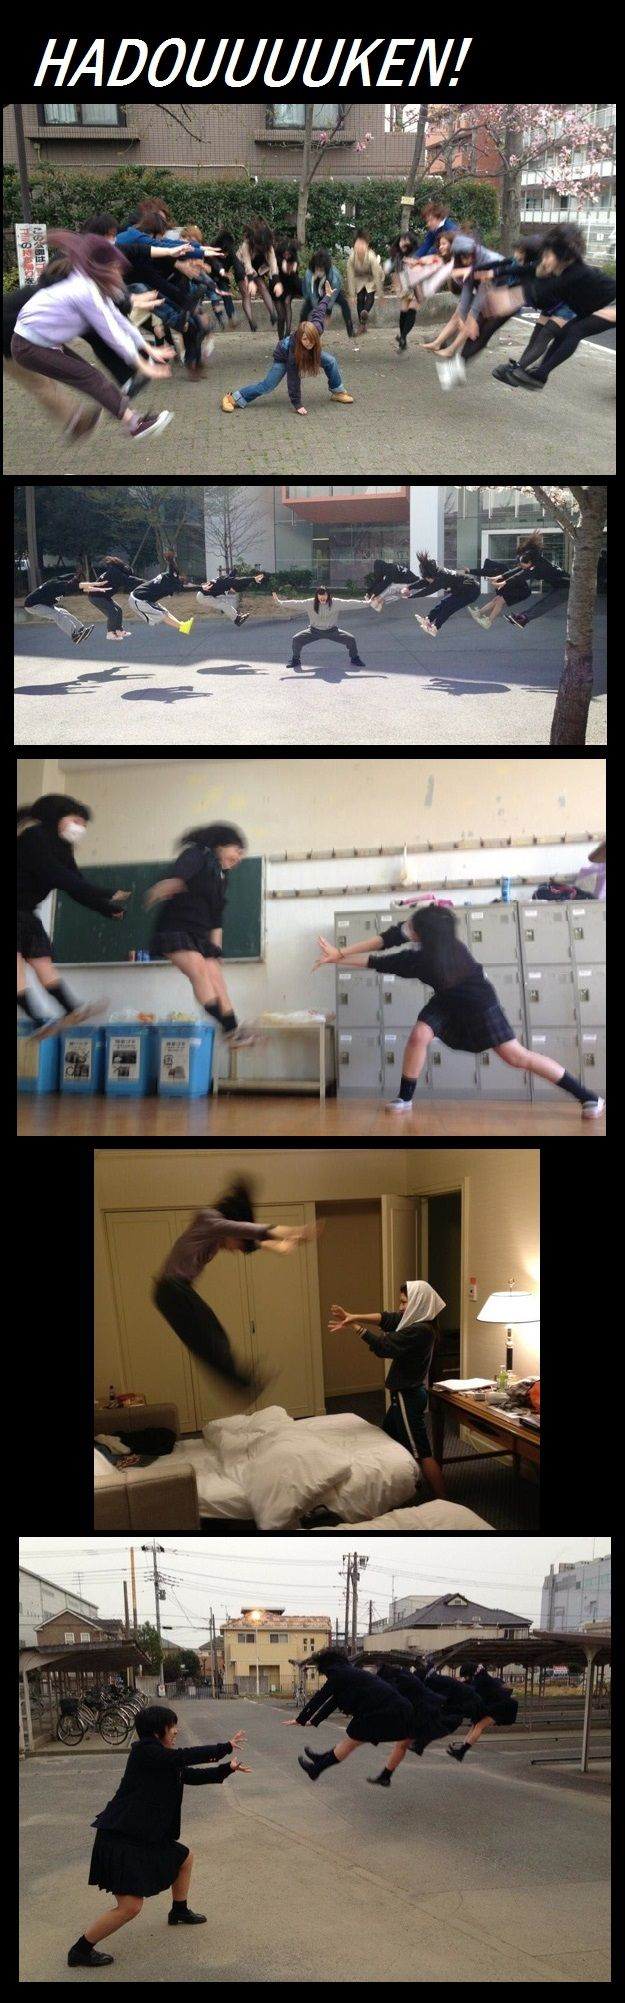 The latest craze sweeping Japan. I want to do this!